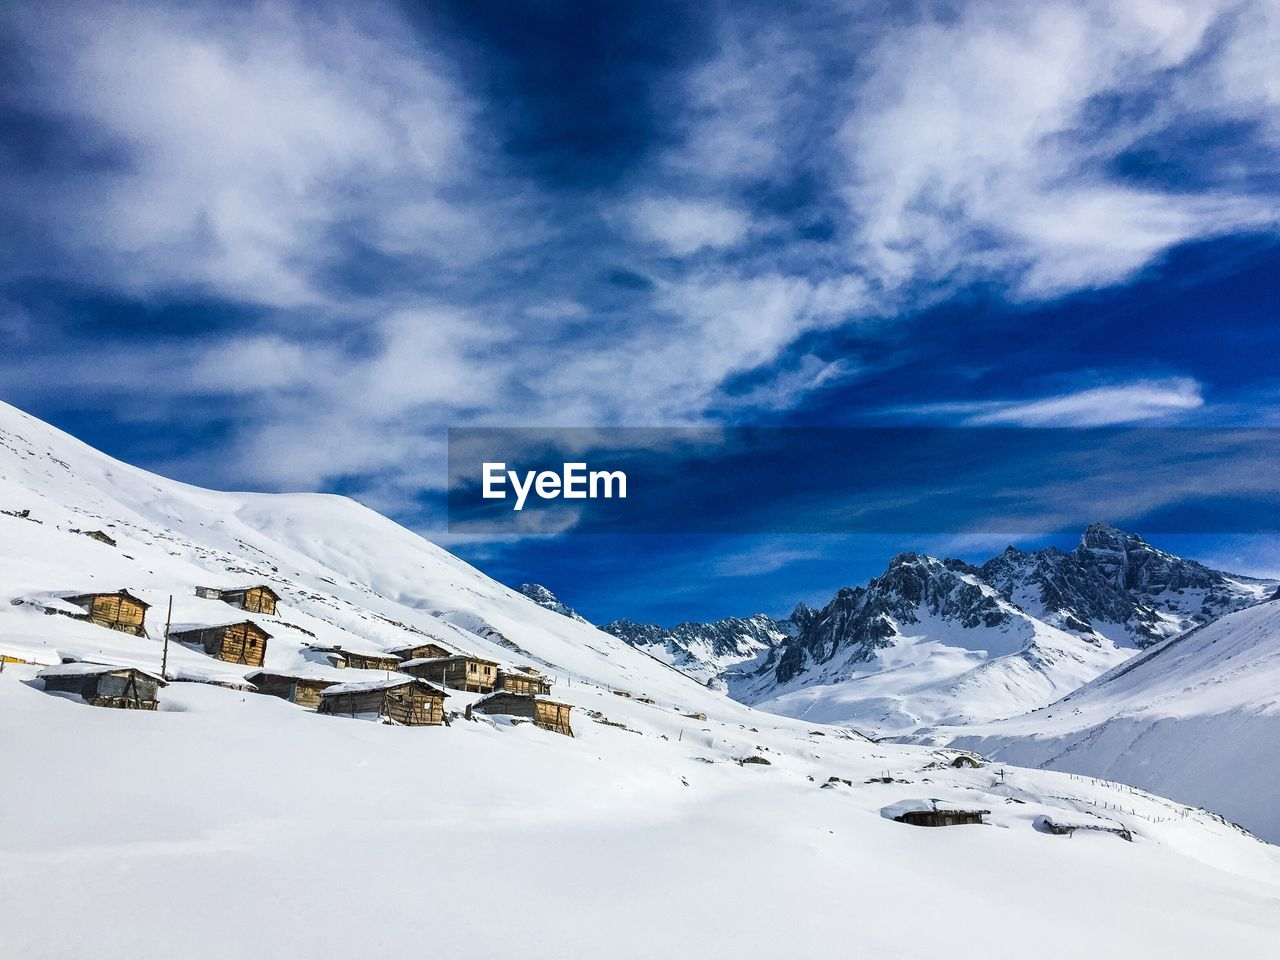 SCENIC VIEW OF COTTAGES ON MOUNTAIN IN WINTER